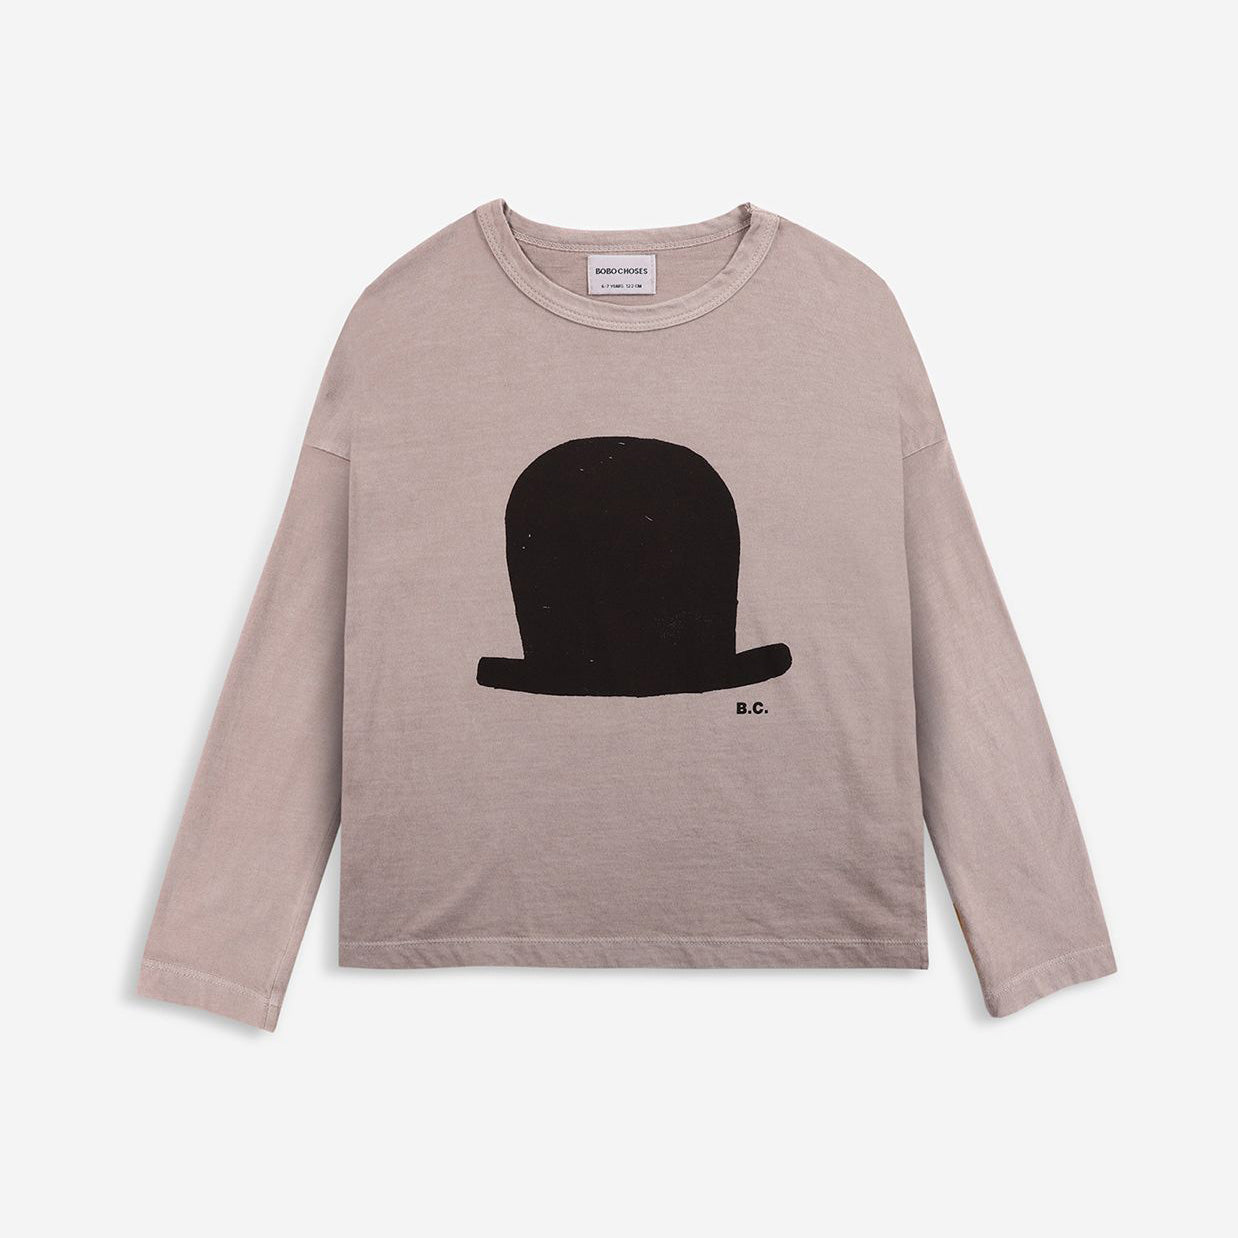 Chapeau long sleeve T-shirt